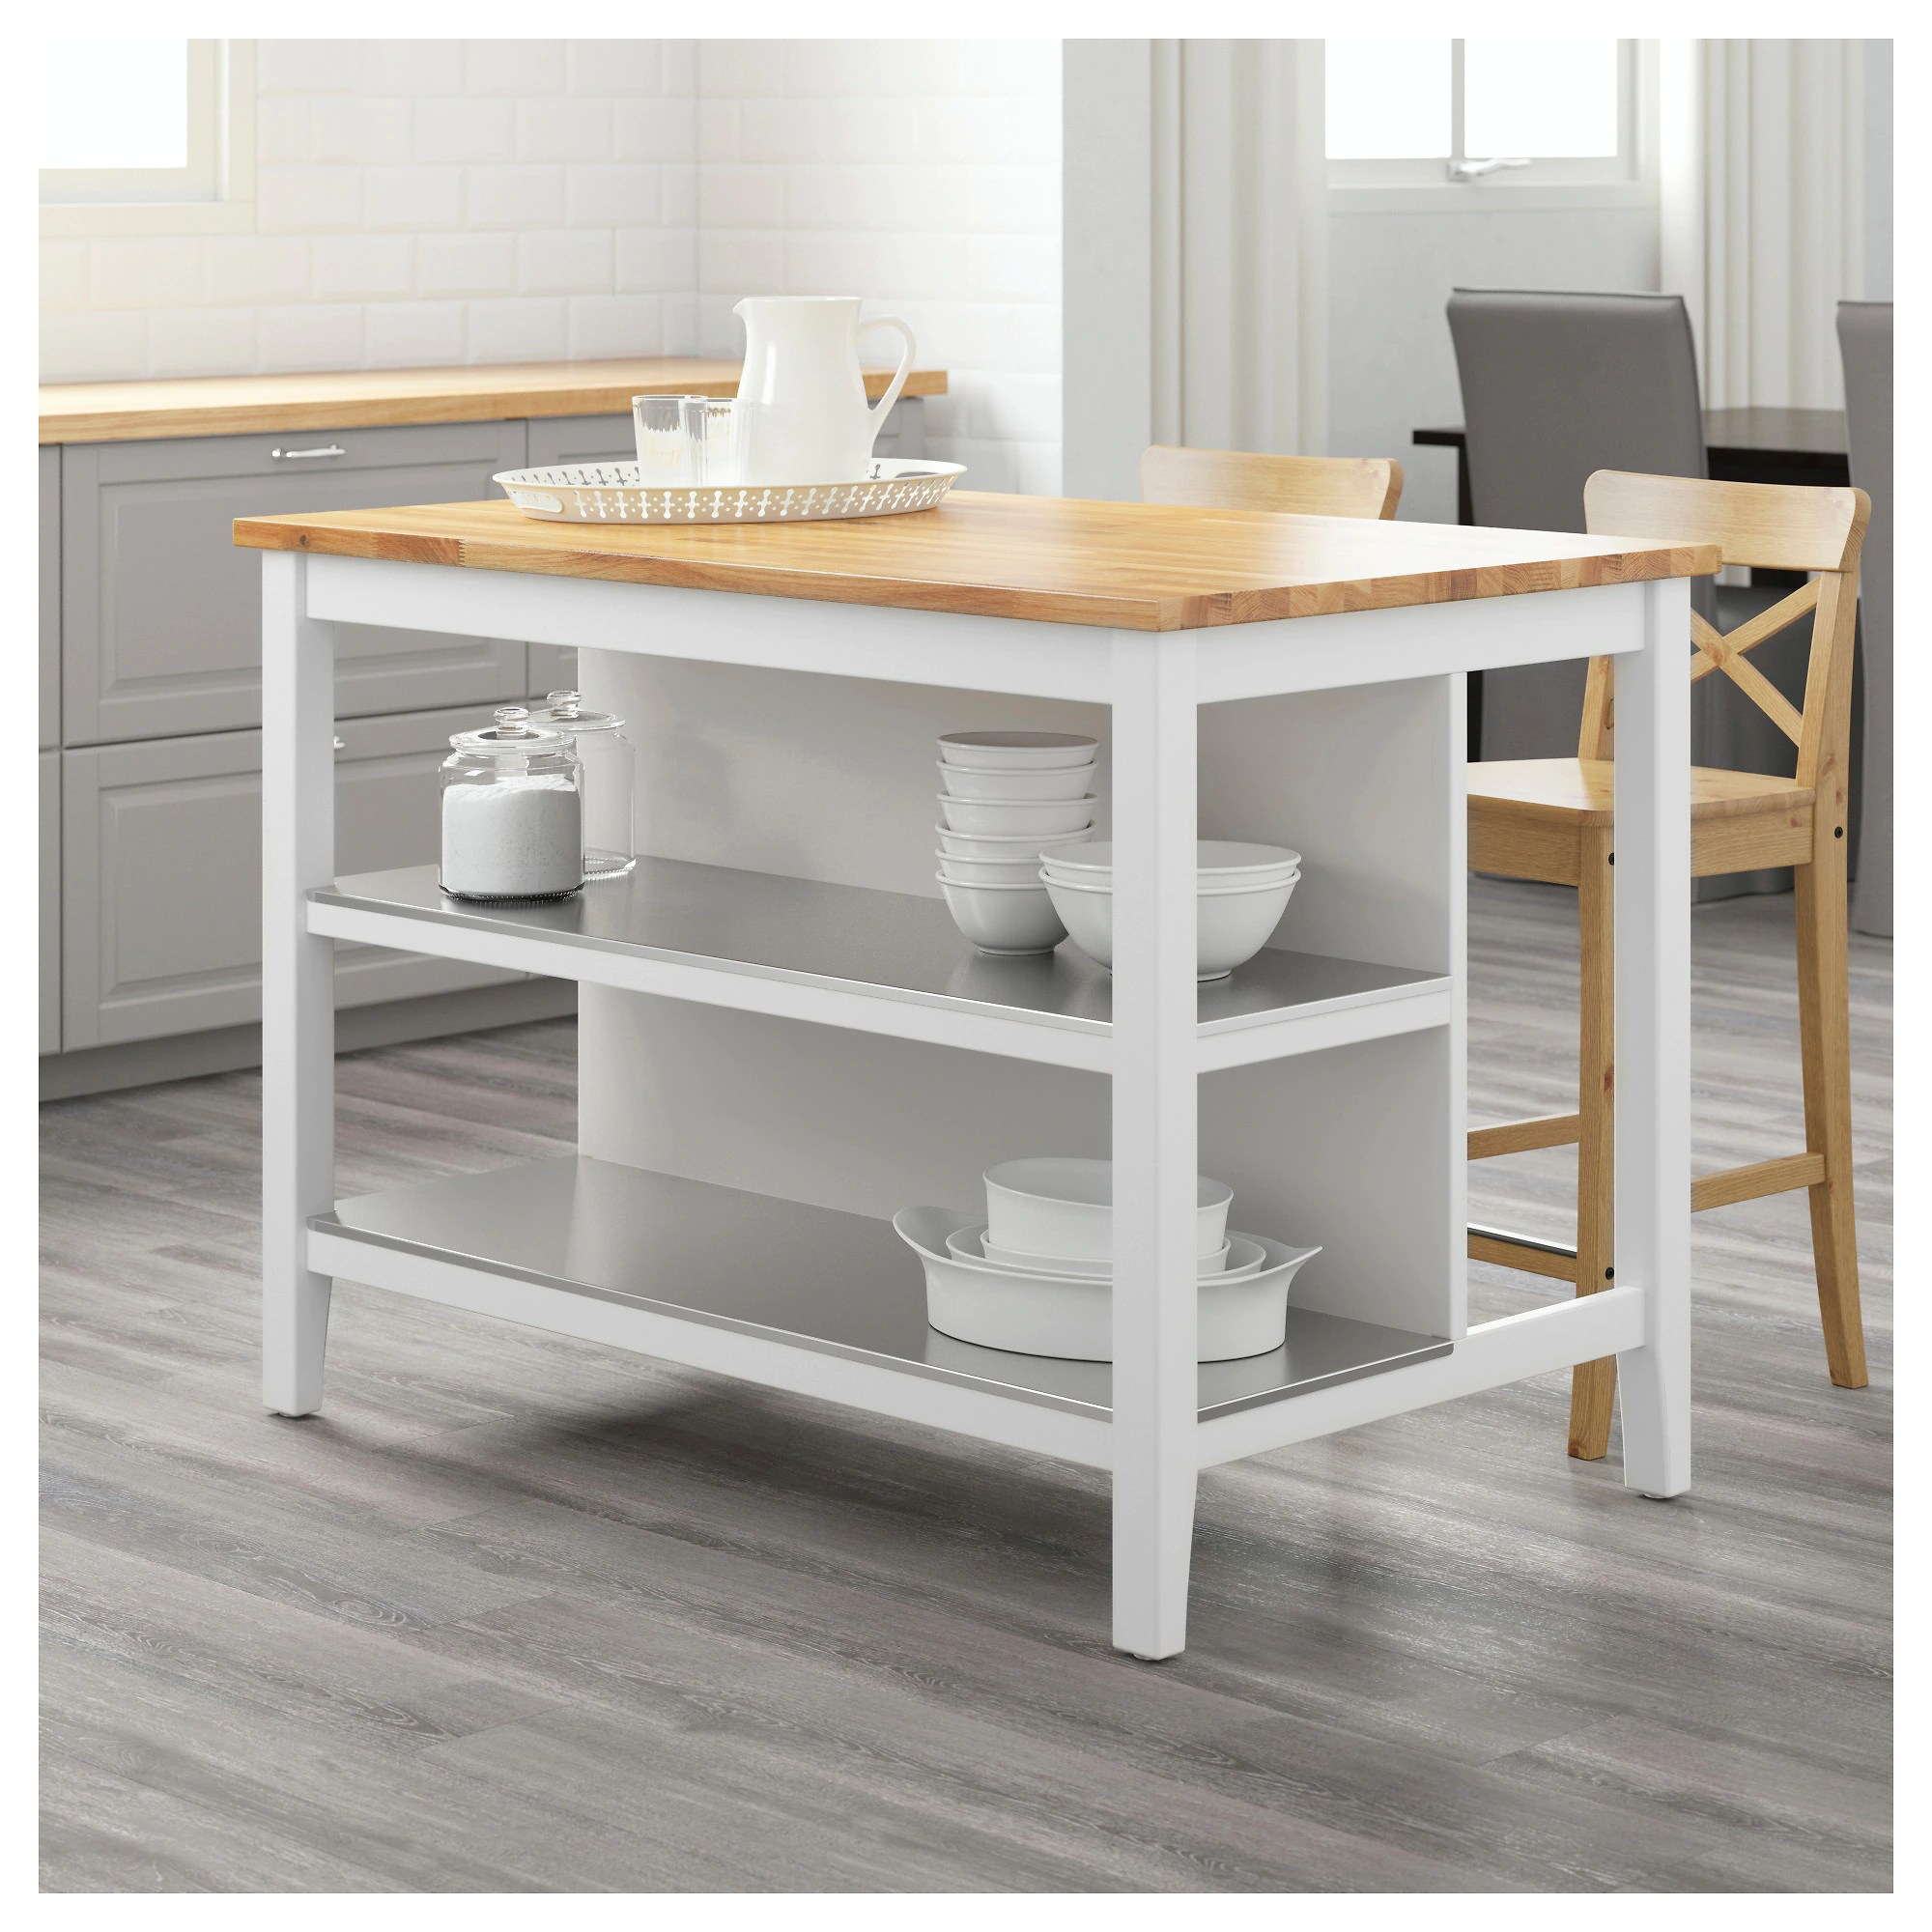 Ikea Kitchen Island Canada Stenstorp Kitchen Island White Oak